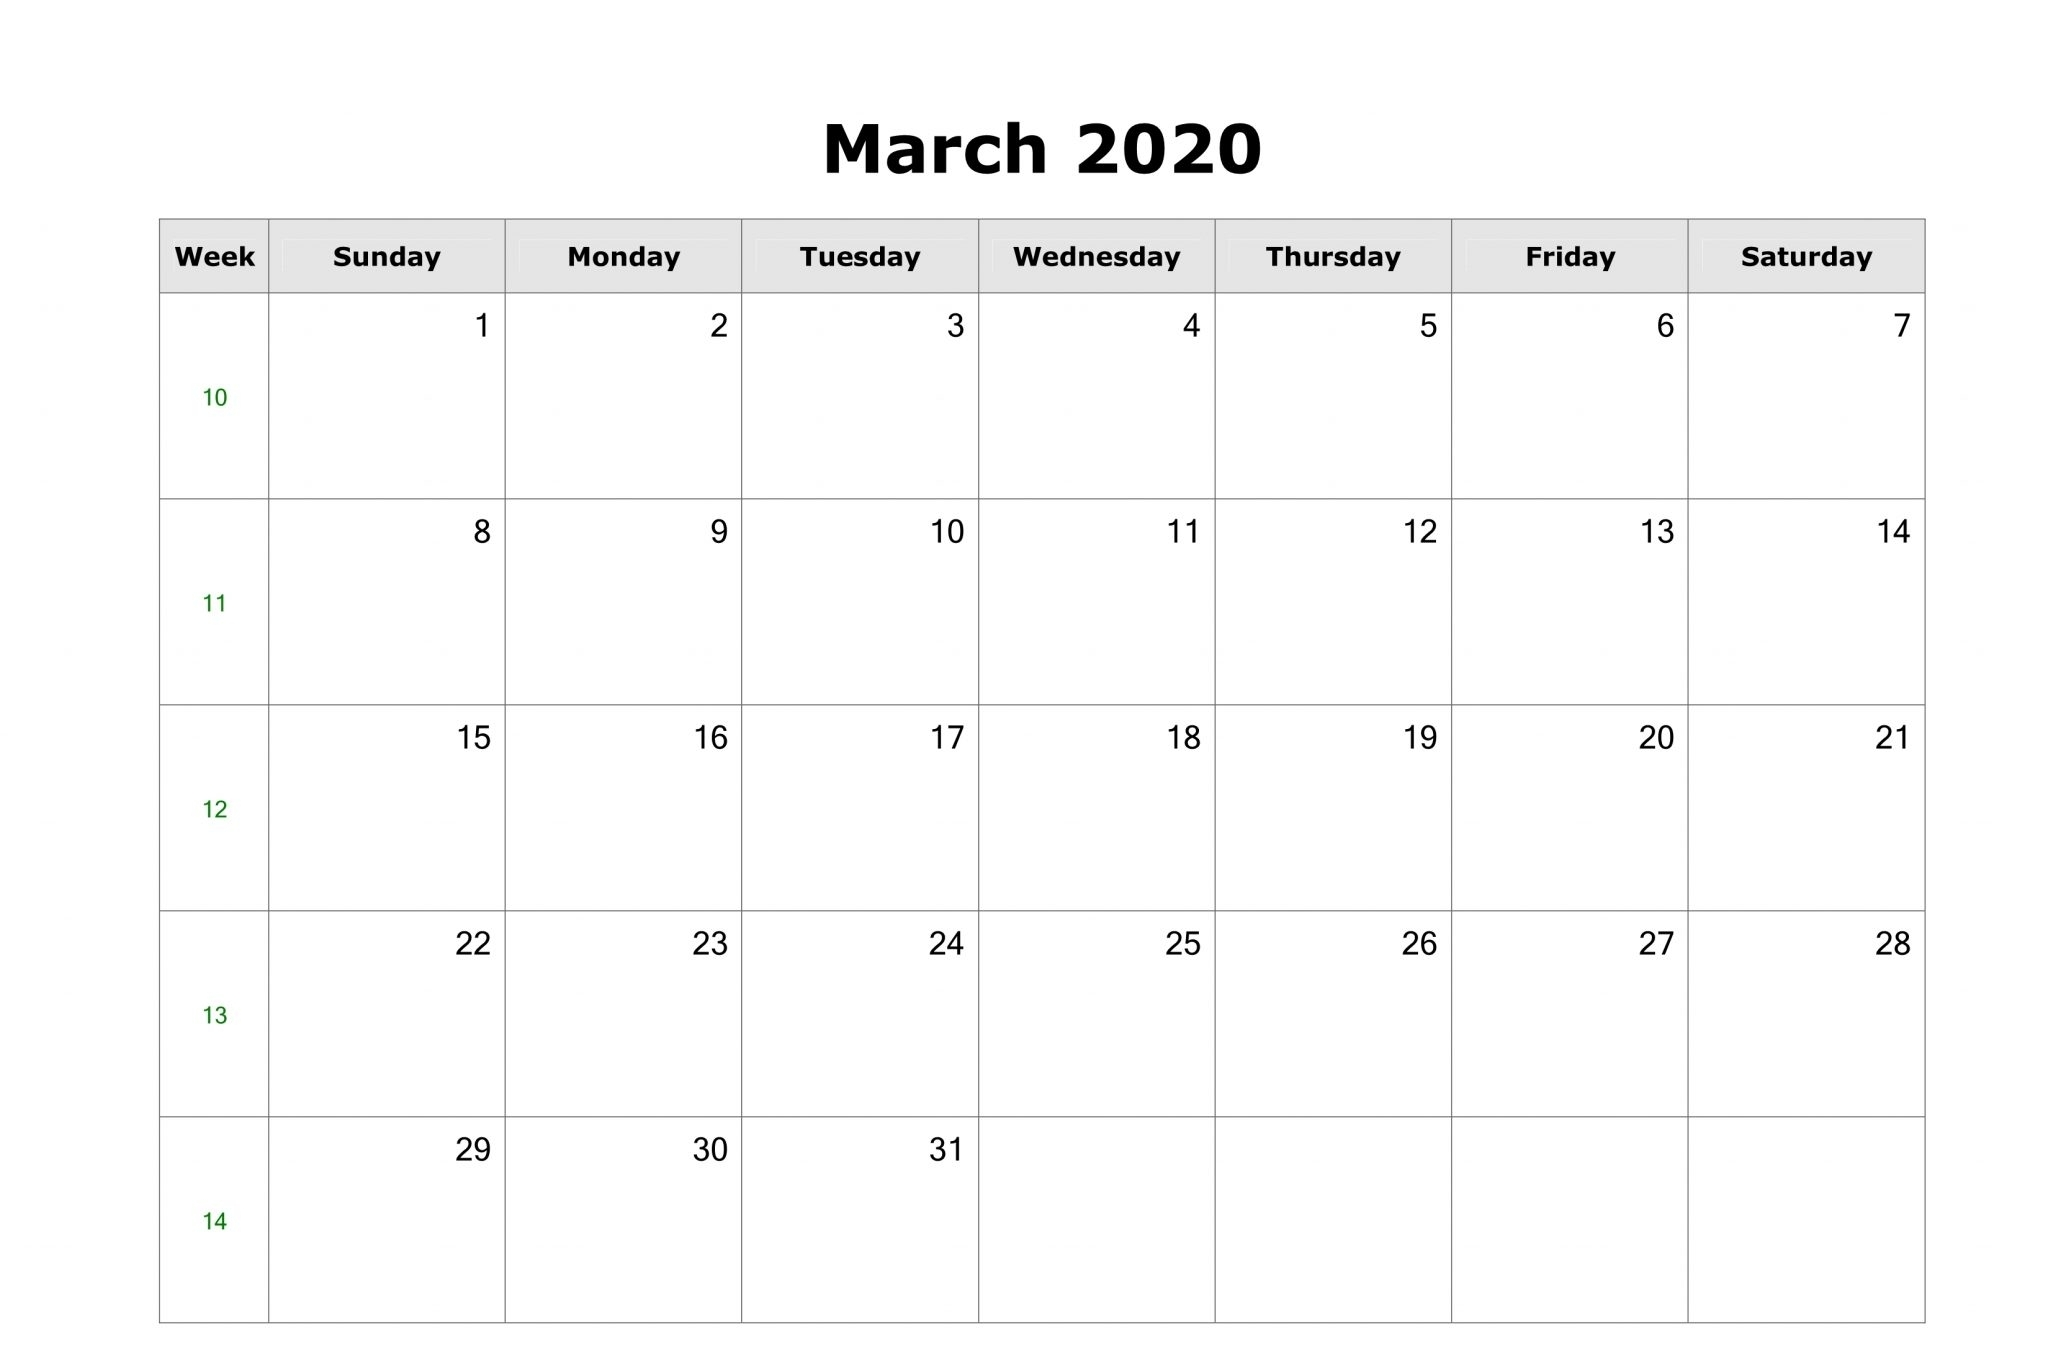 March 2020 Calendar Printable Template In Pdf, Word, Excel